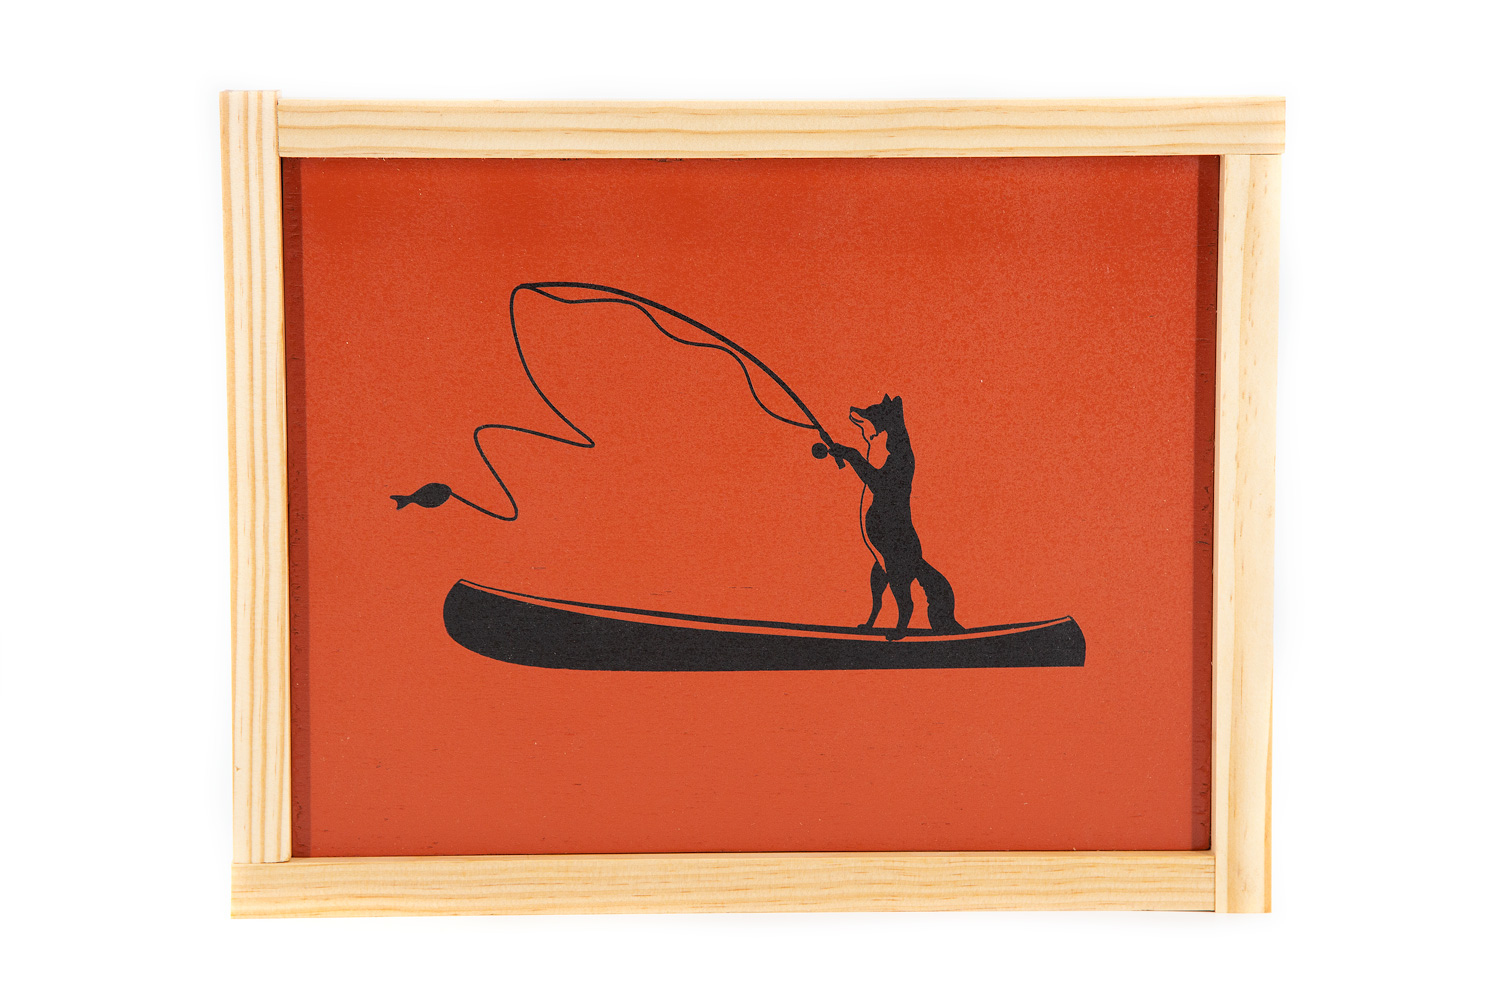 Art and Decor - Sanborn Canoe Co